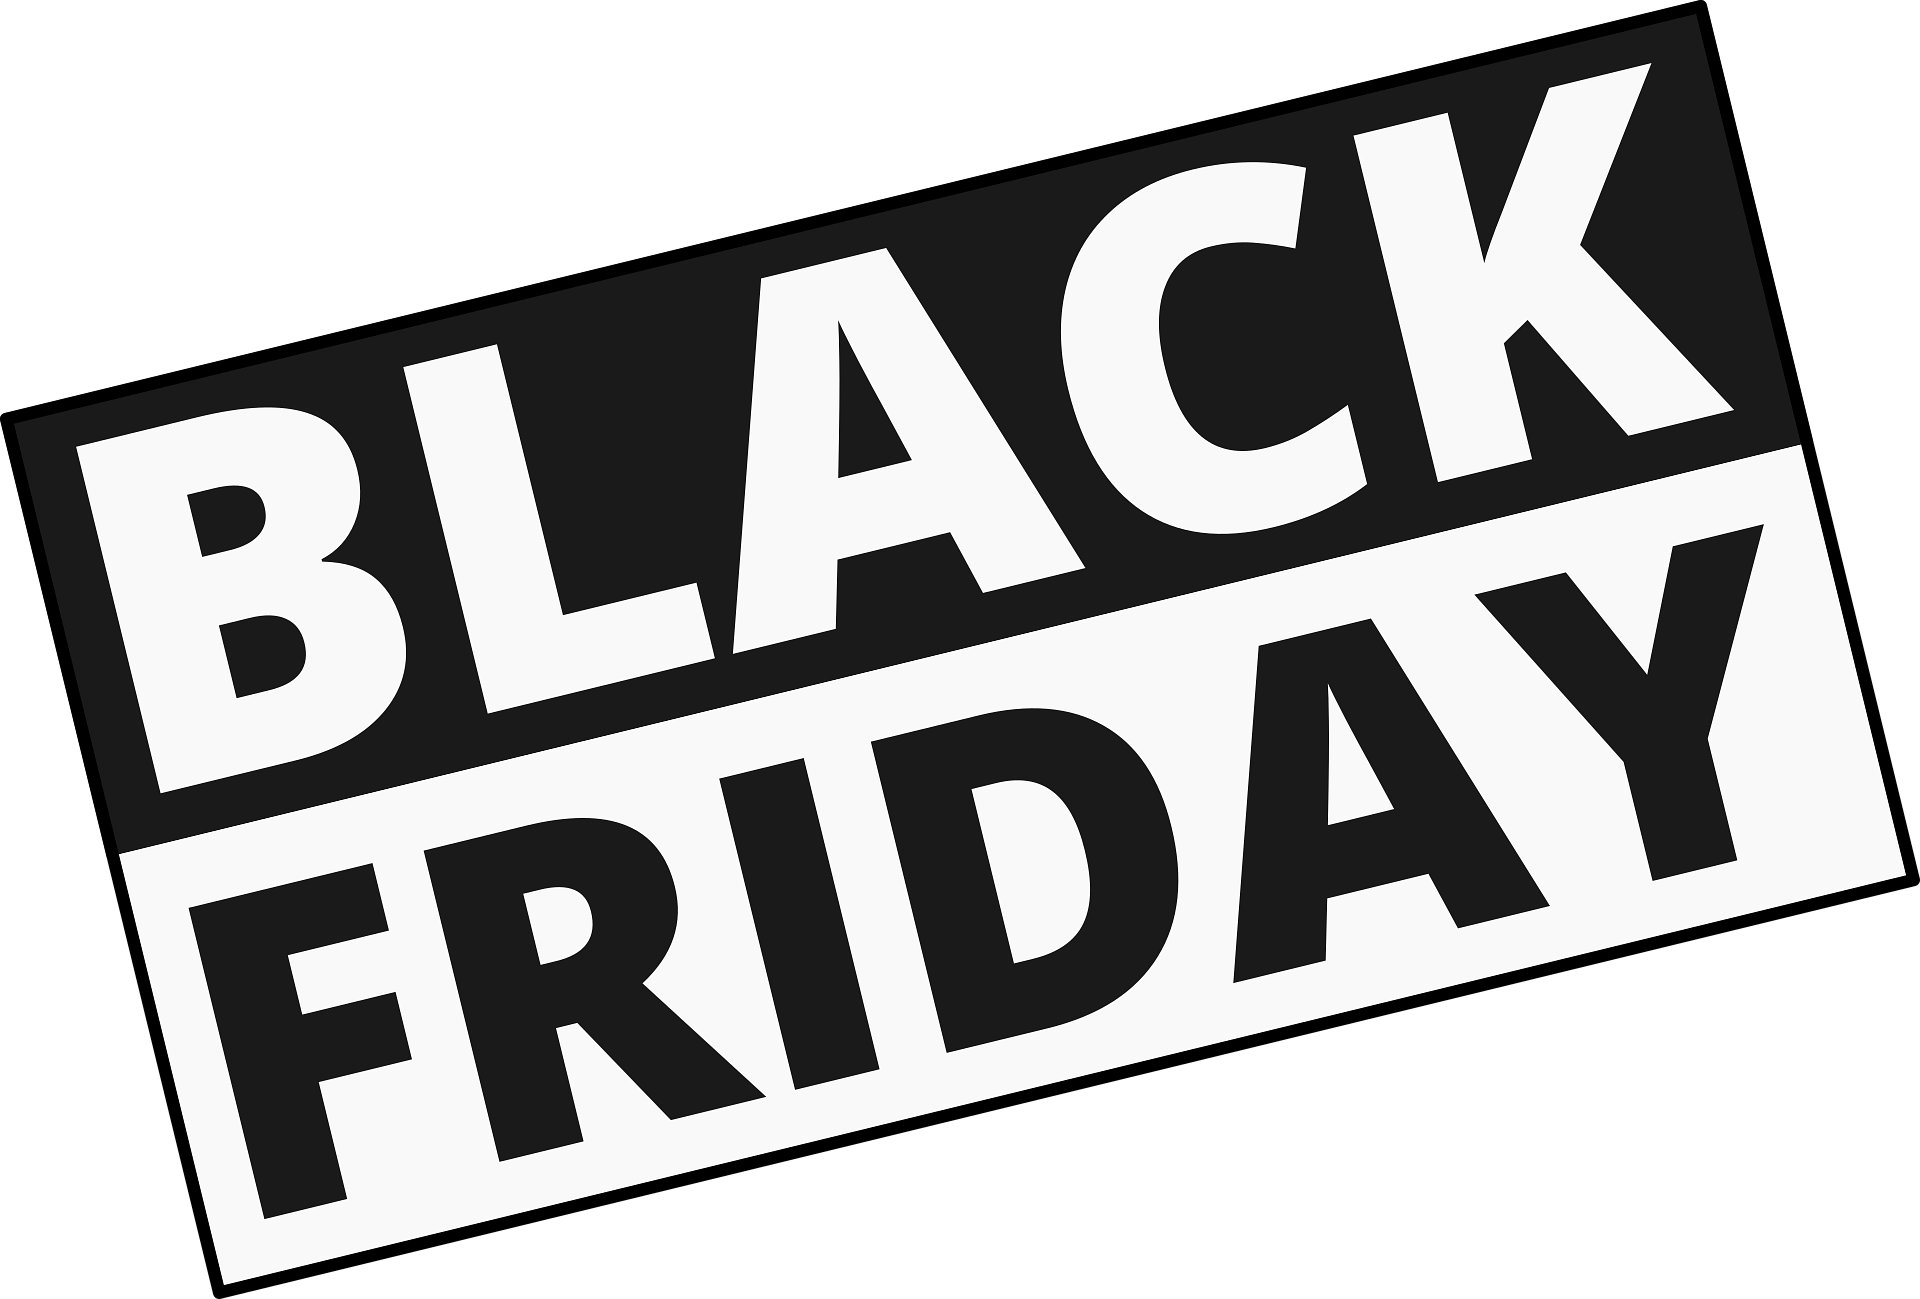 Black Friday deals for dog training gear and other canine things!